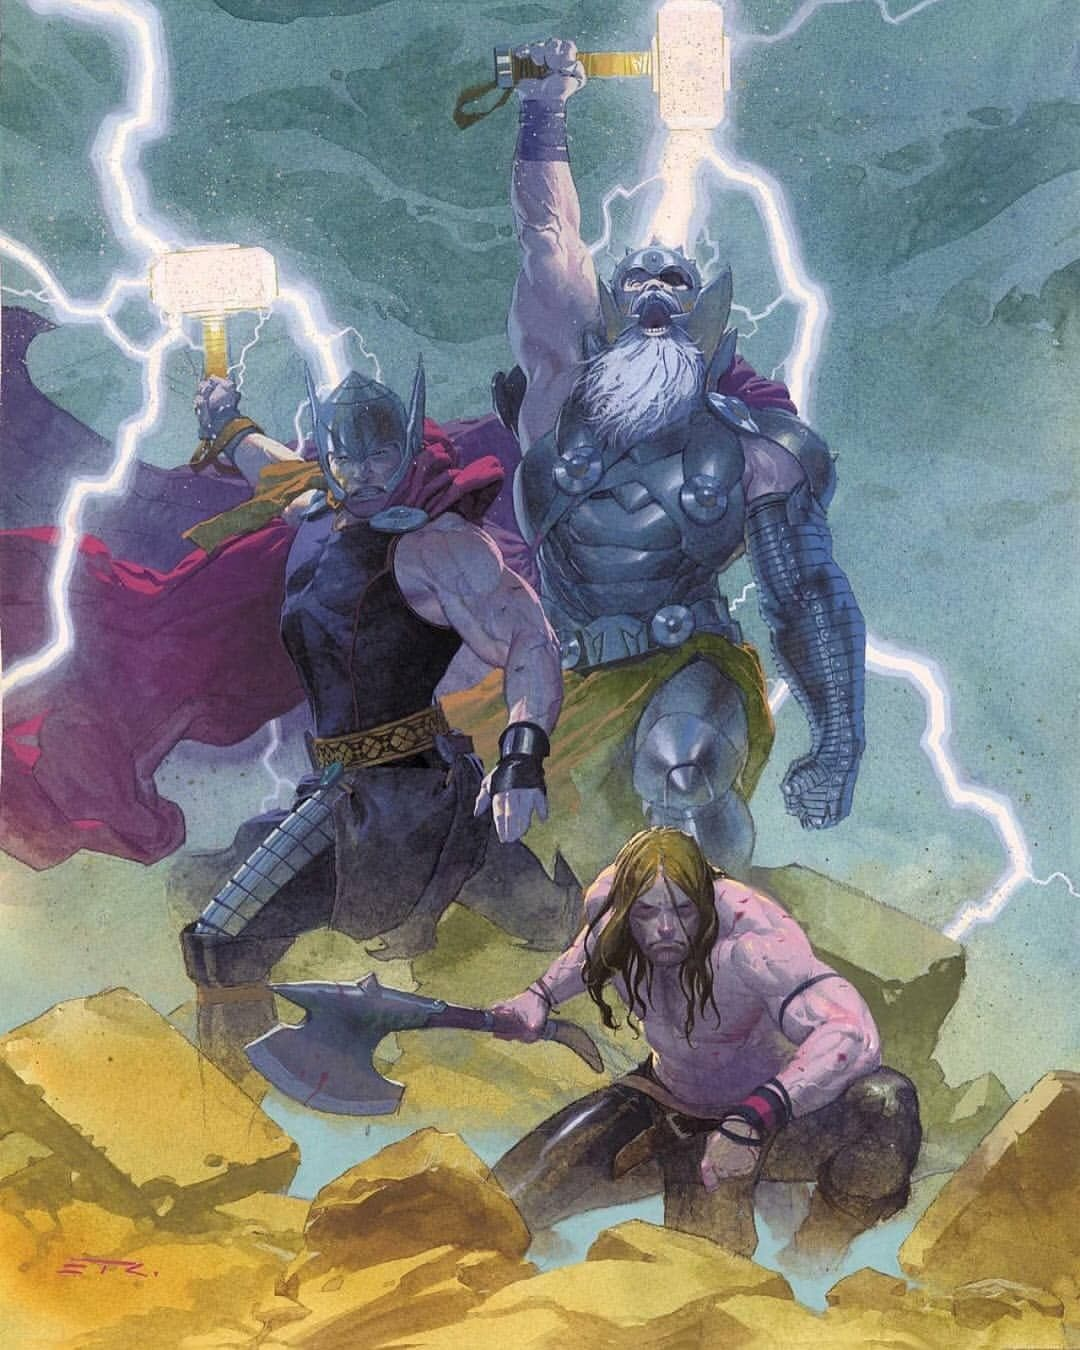 Choose The Best One From 1 To 10 By Esad Ribic Wolverine Logan Thor Captainamerica Blackpanther Ironman D Marvel Comics Art Thor Comic Superhero Art